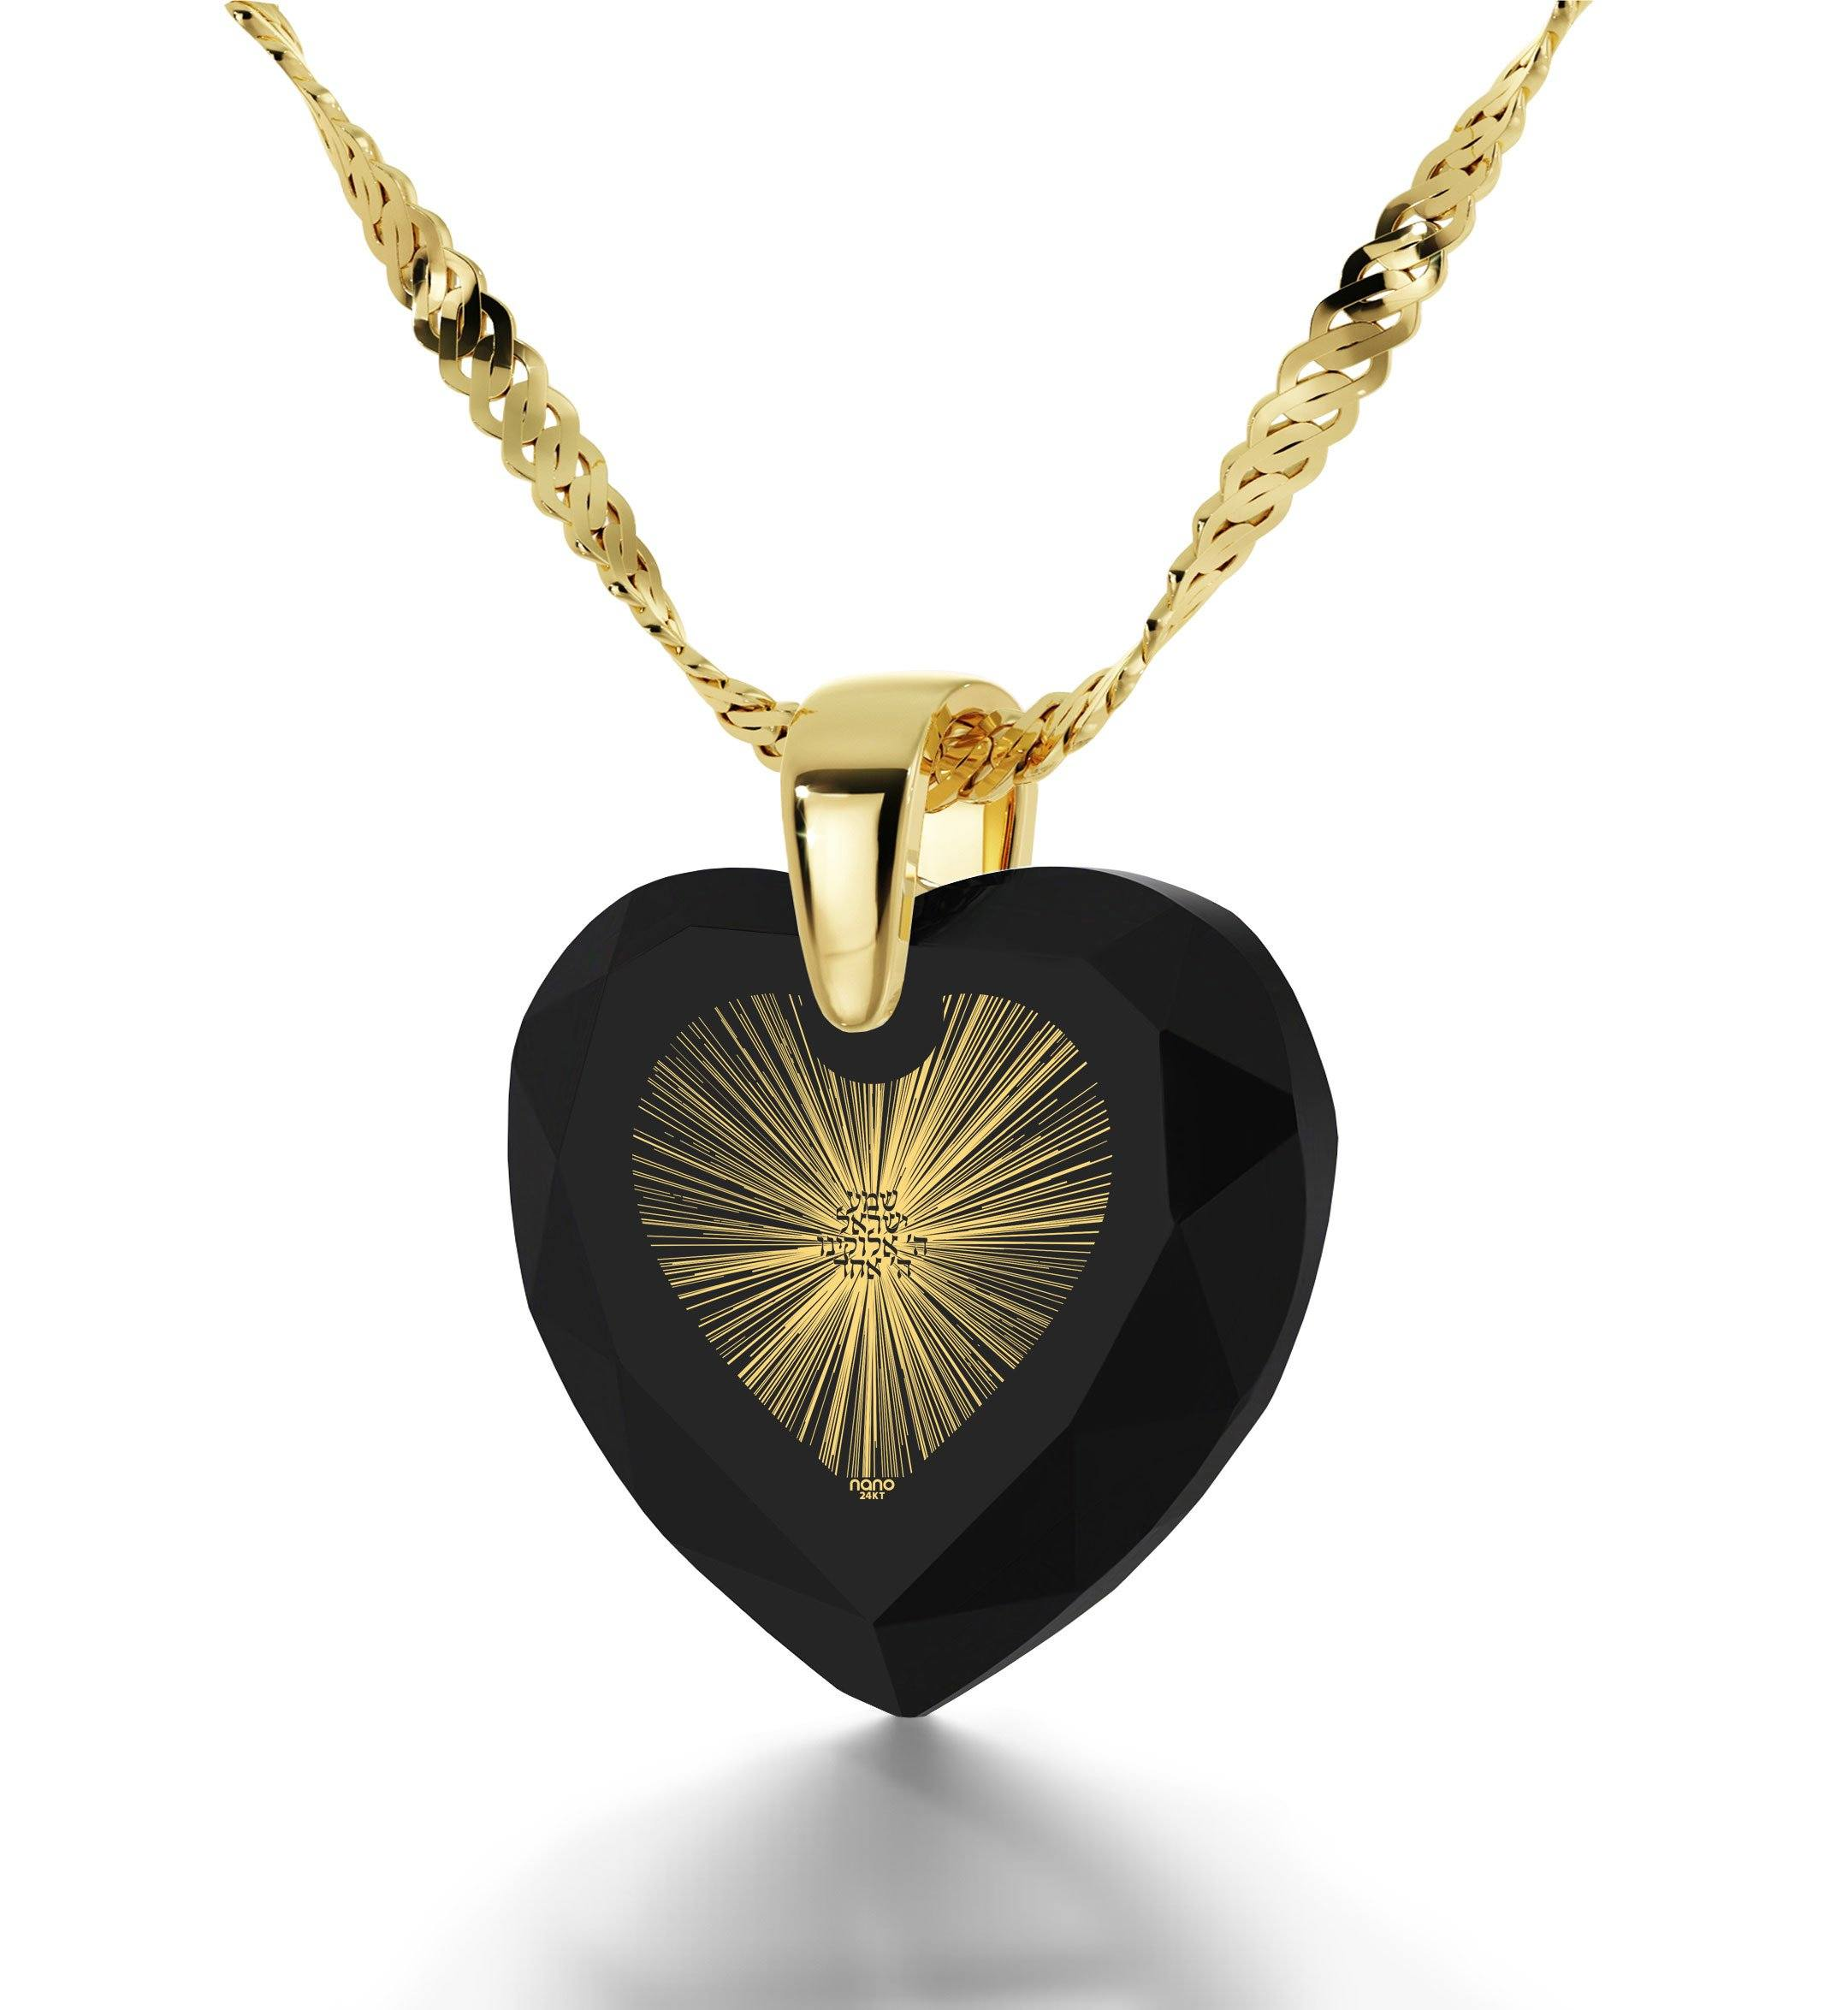 """Shema Yisrael"" Engraved in 24k, Jewelry from Israel with Black Onyx Stone, Israeli Jewelry Designer"